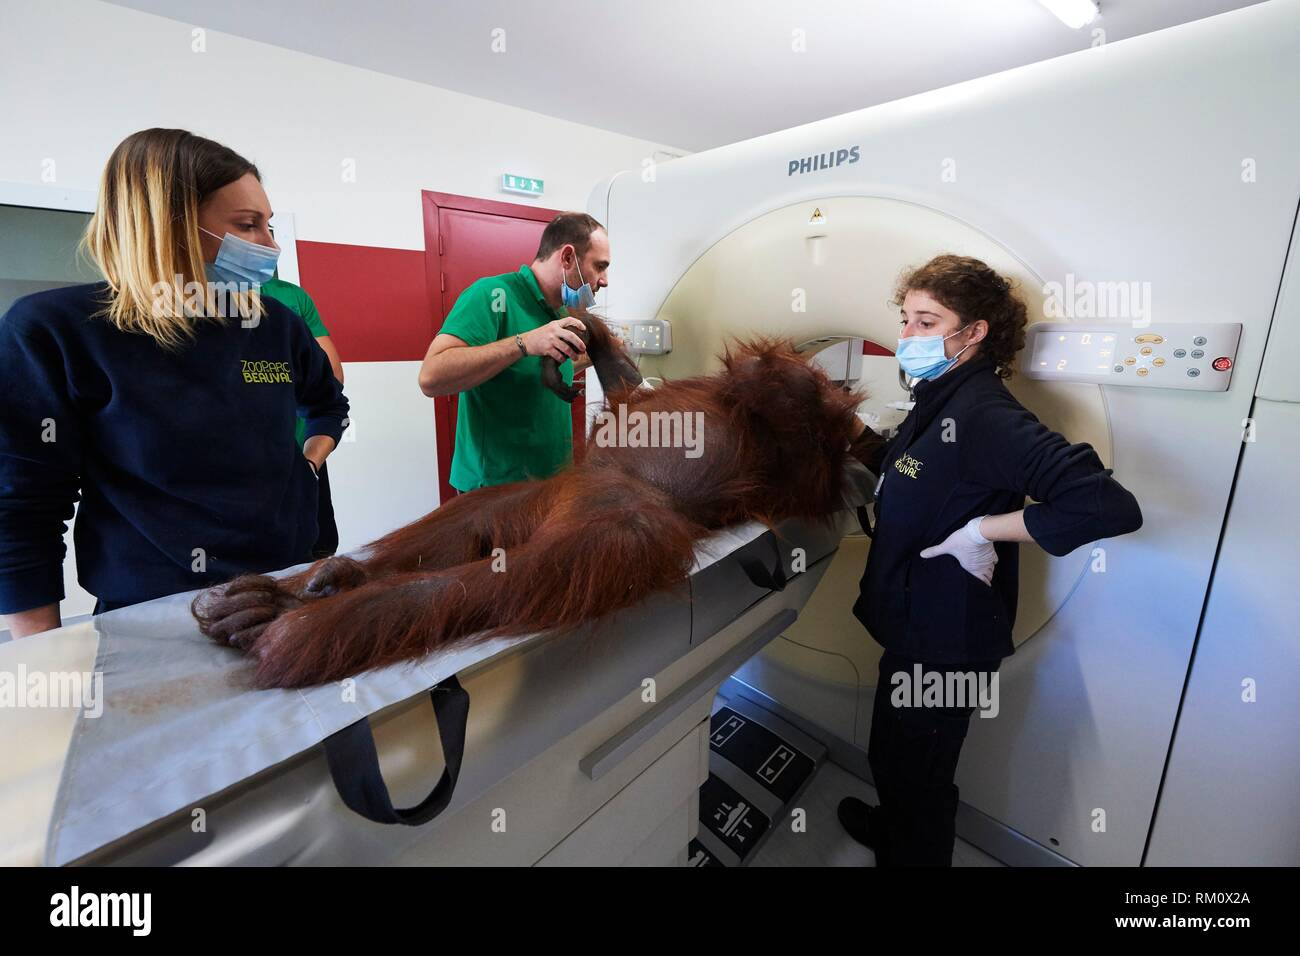 Female Orangutan (Pongo pygmaeus) under anaesthetic and undergoing an RMI scanner in the surgery station of the zoo, Zooparc Beauval, France, October - Stock Image